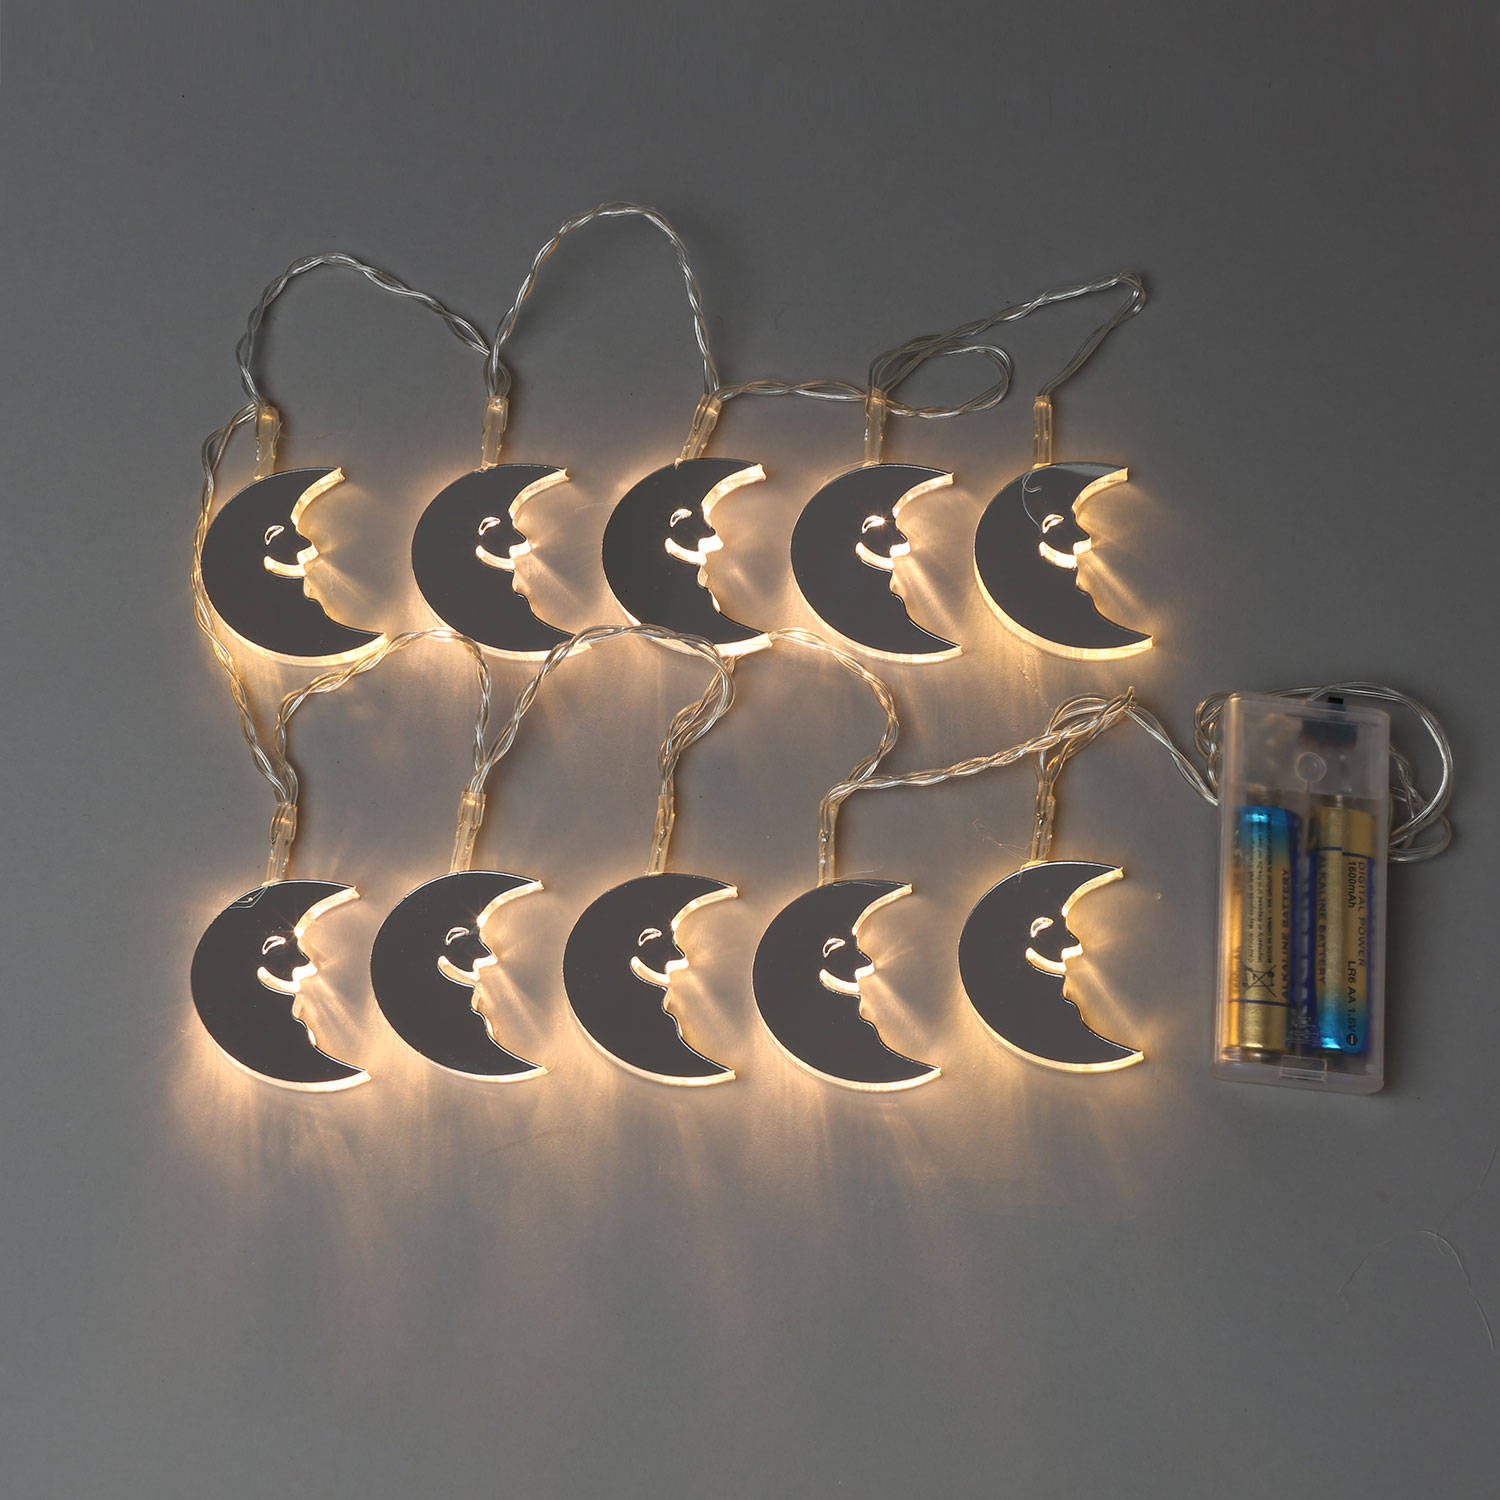 String Lights Moon : Lights.com String Lights Decorative String Lights Mirrored Moon Battery String Lights ...